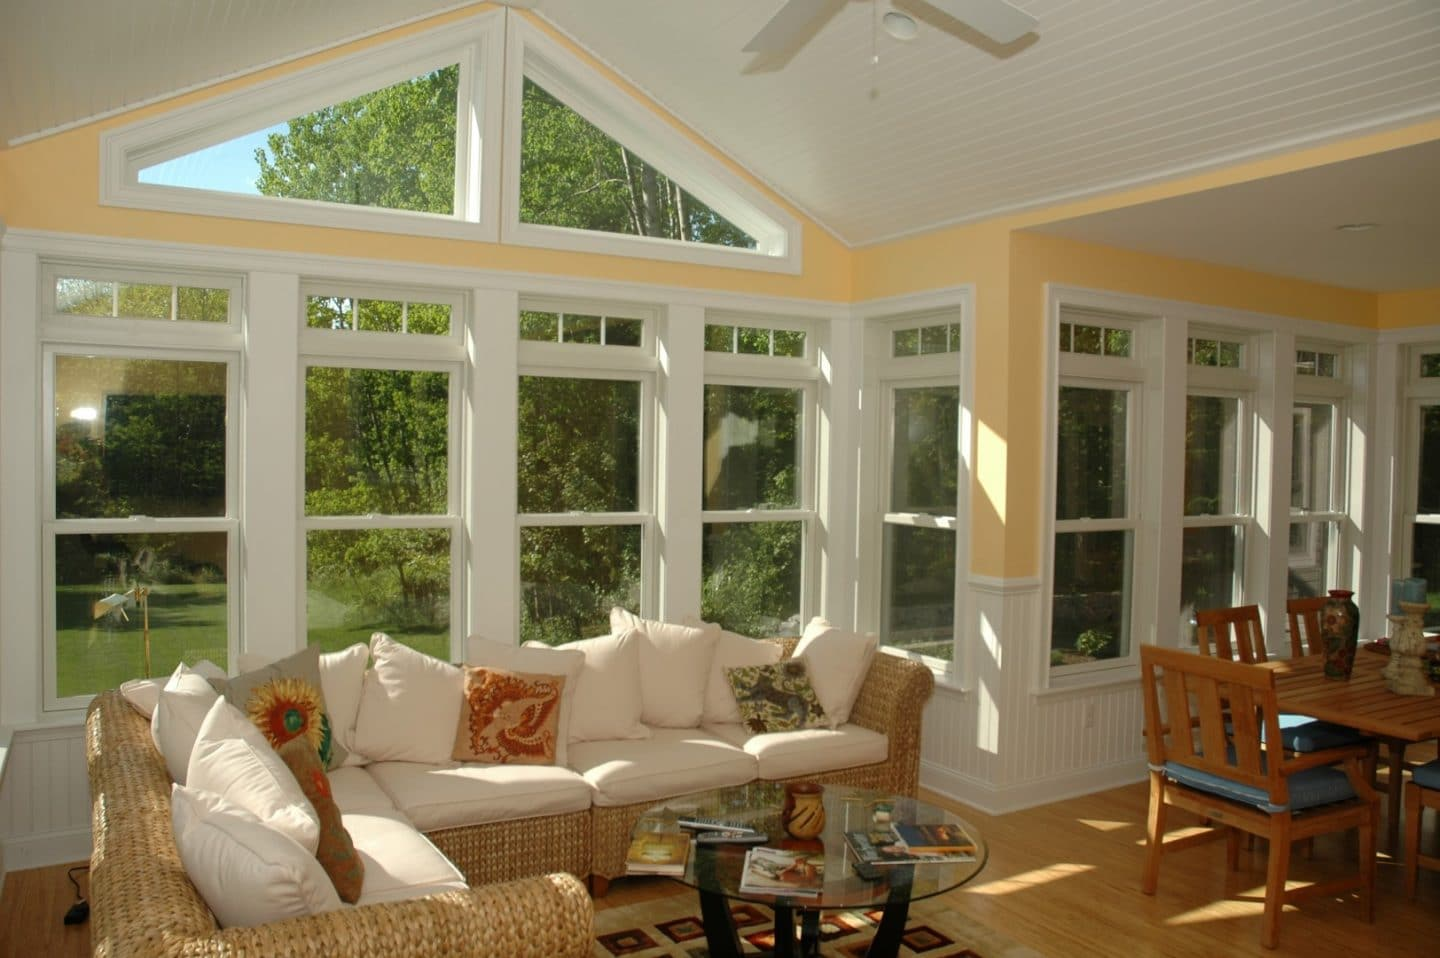 Sunroom Remodeling Services - Dutchess County, NY - DBS Remodel